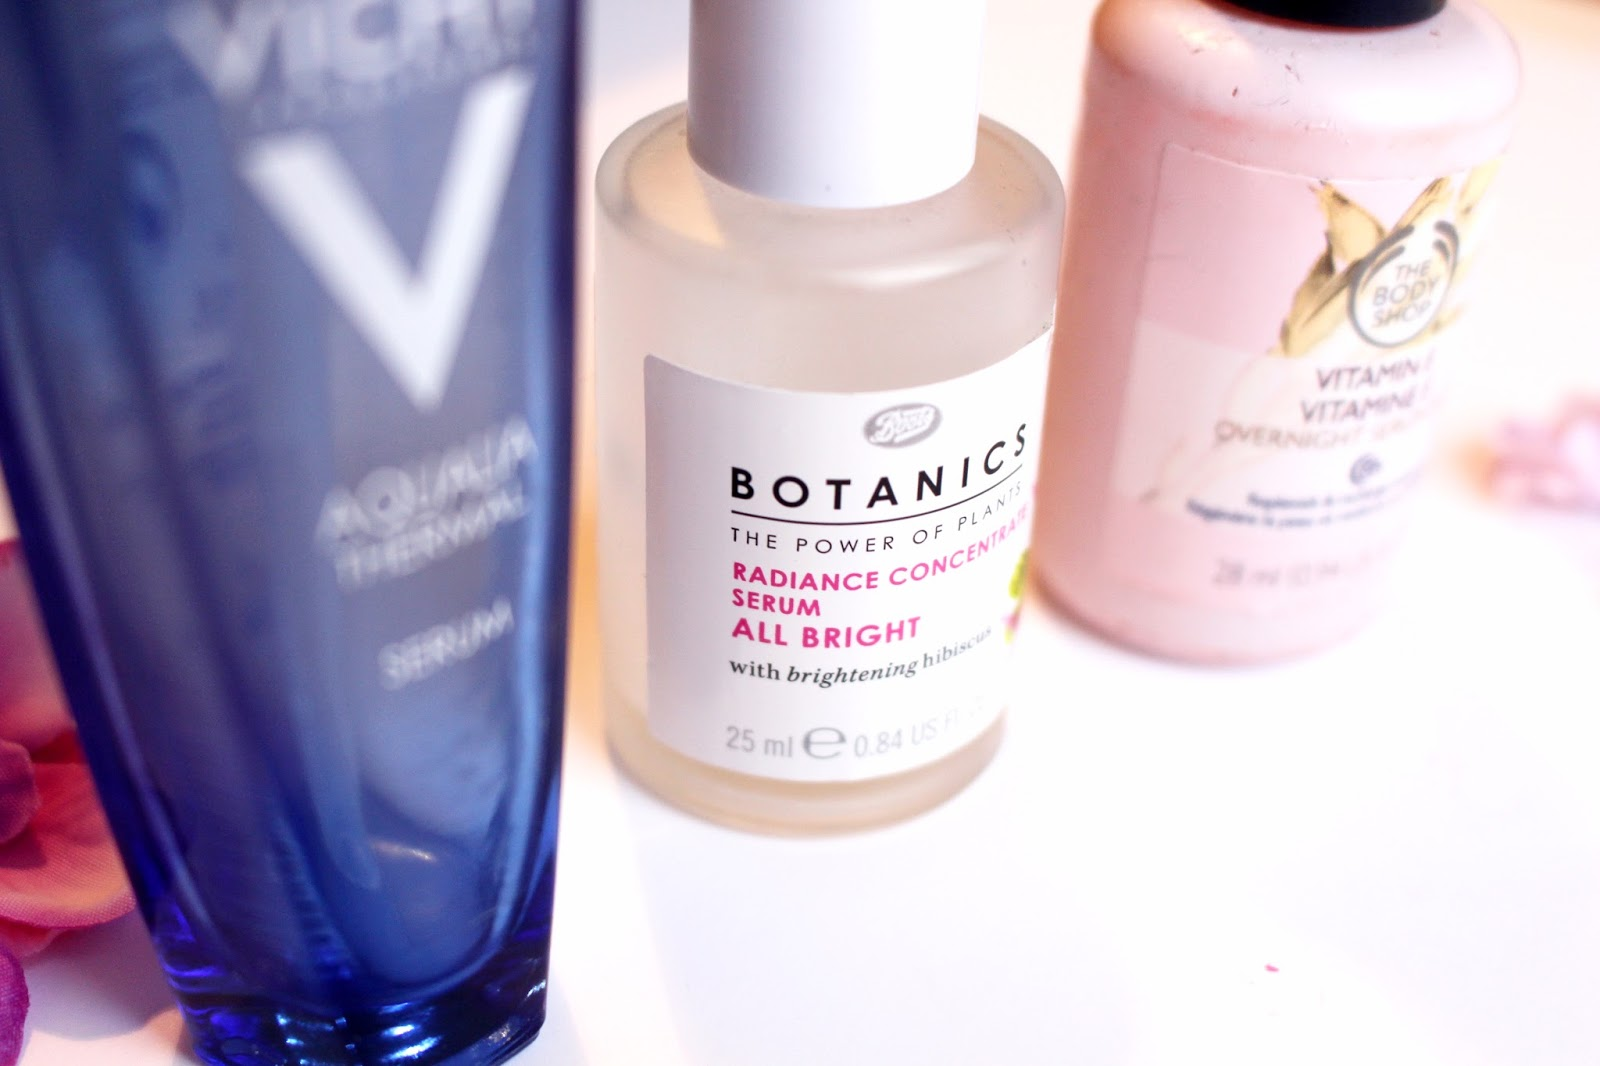 vichy bodyshop and boots radiance facial serum, hydration, skincare